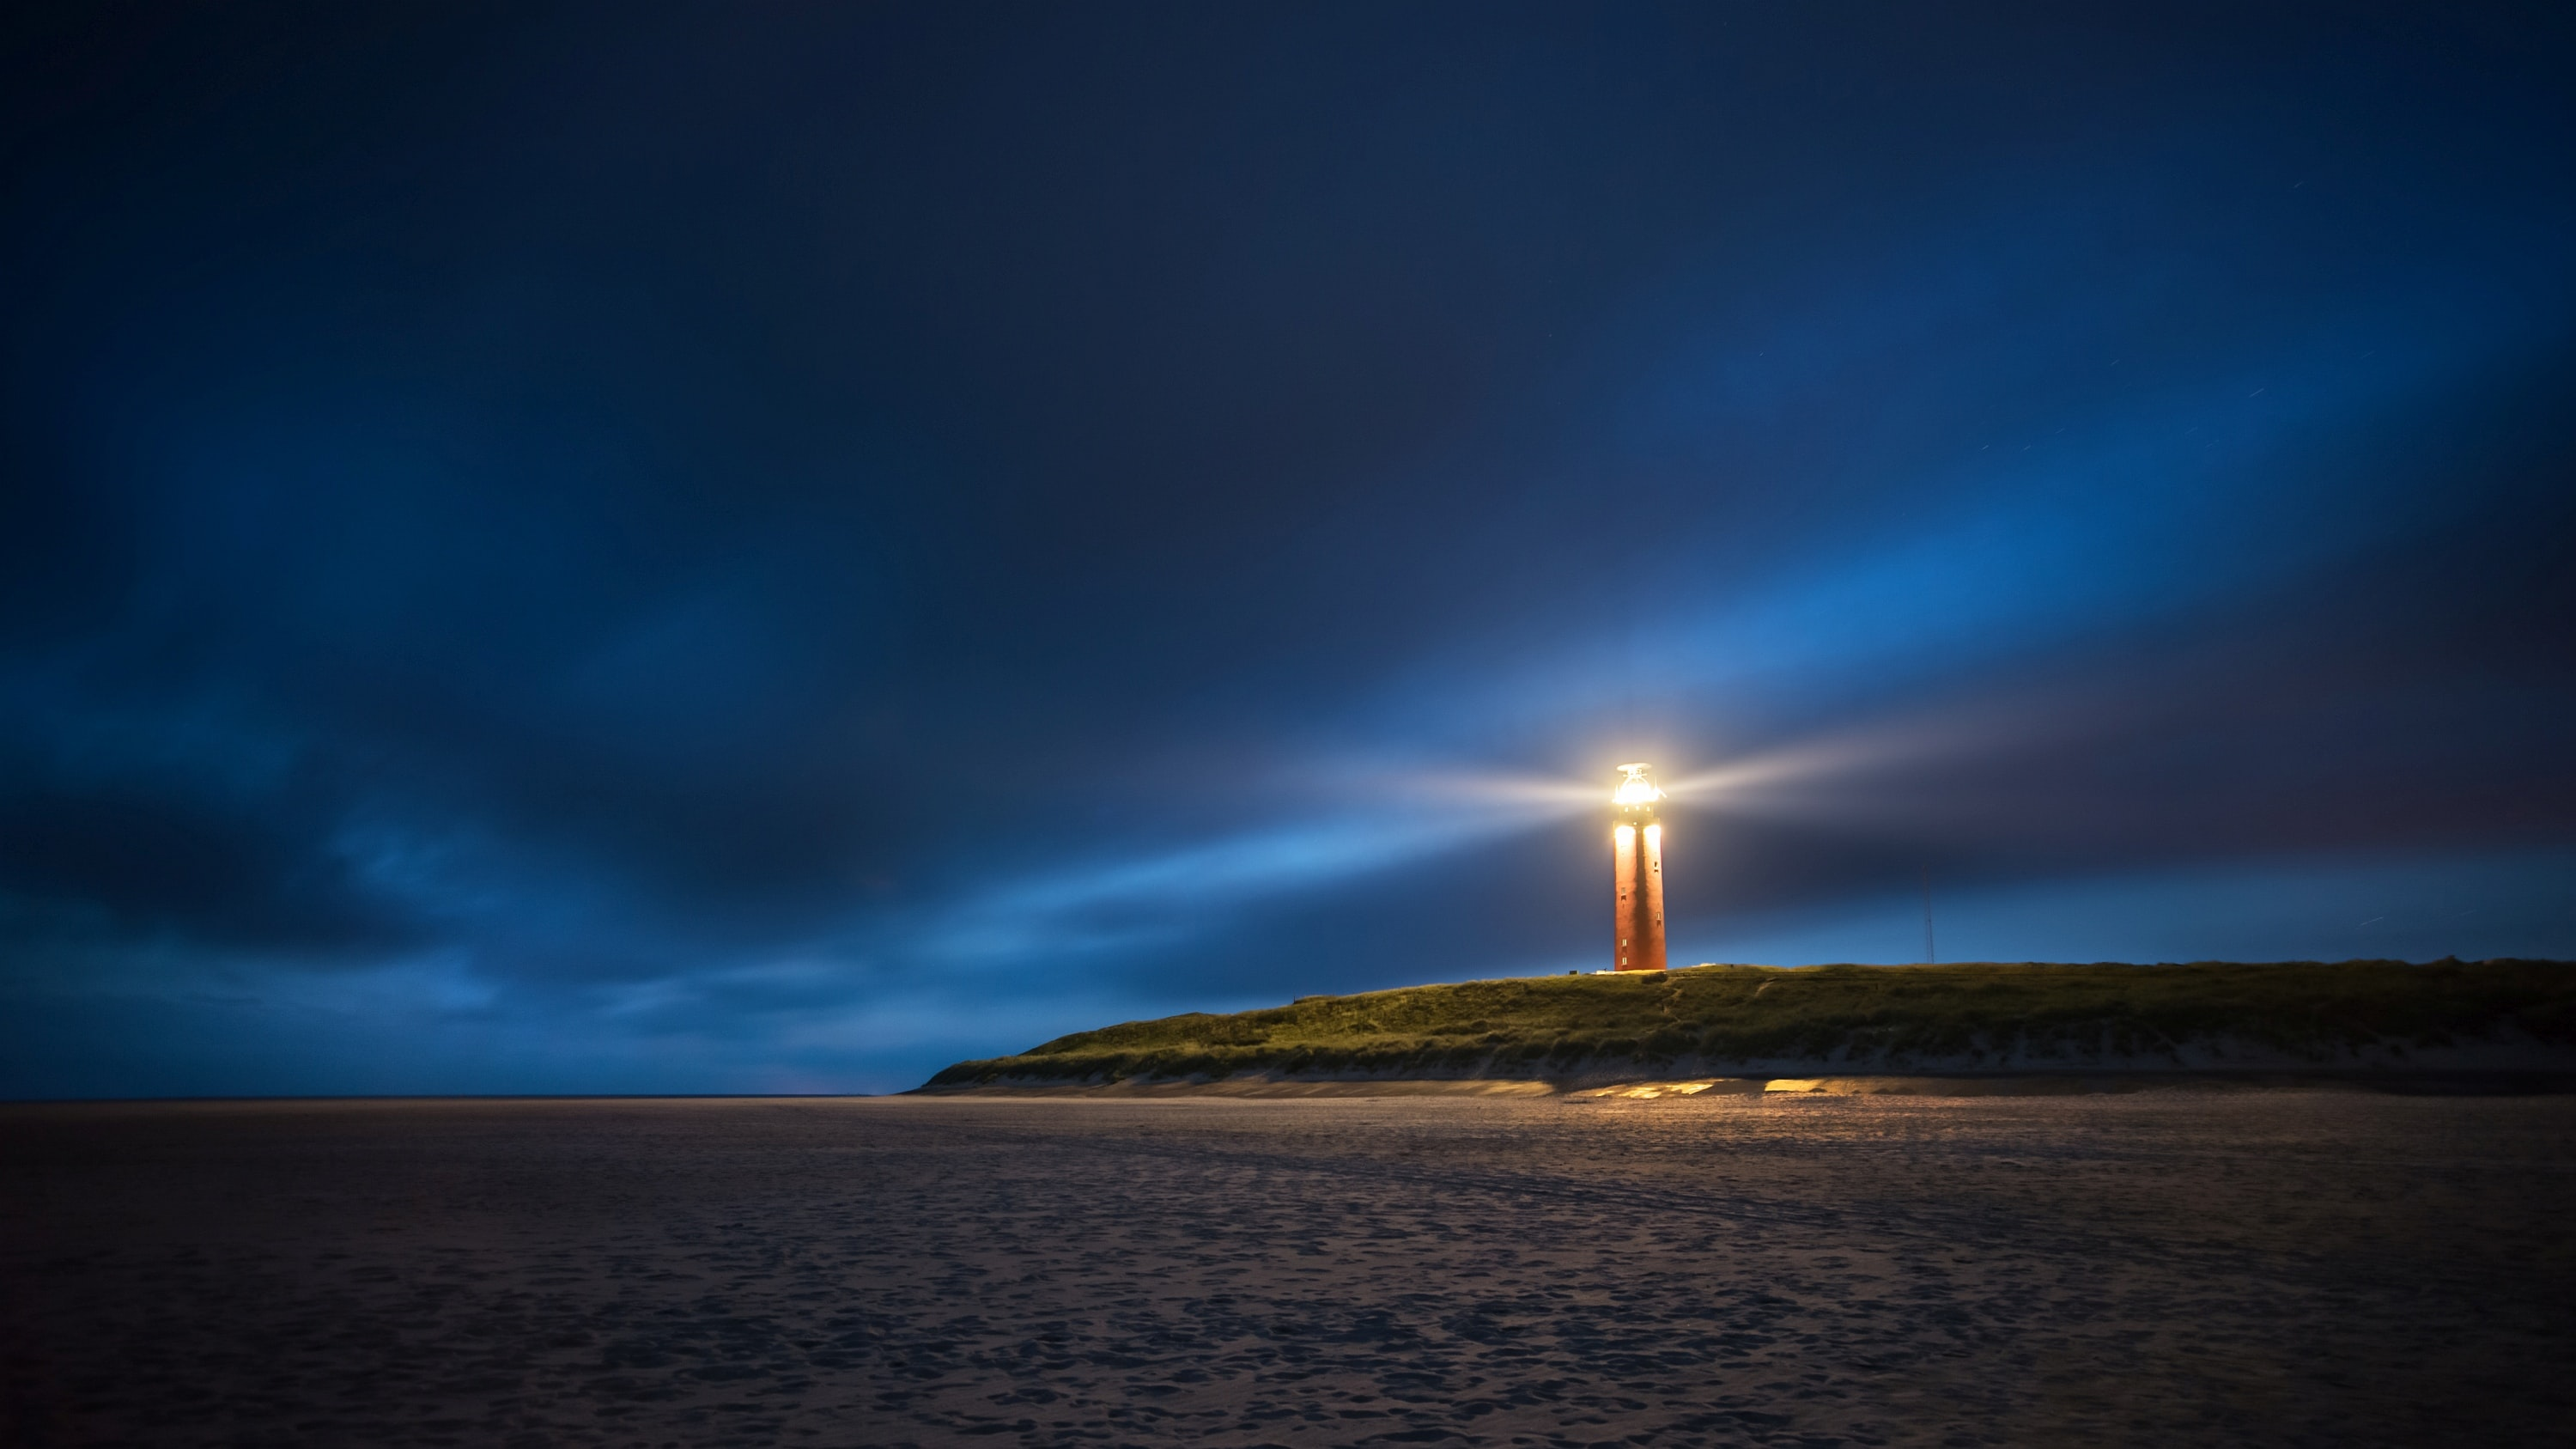 lighthouse under cloudy sky during nighttime